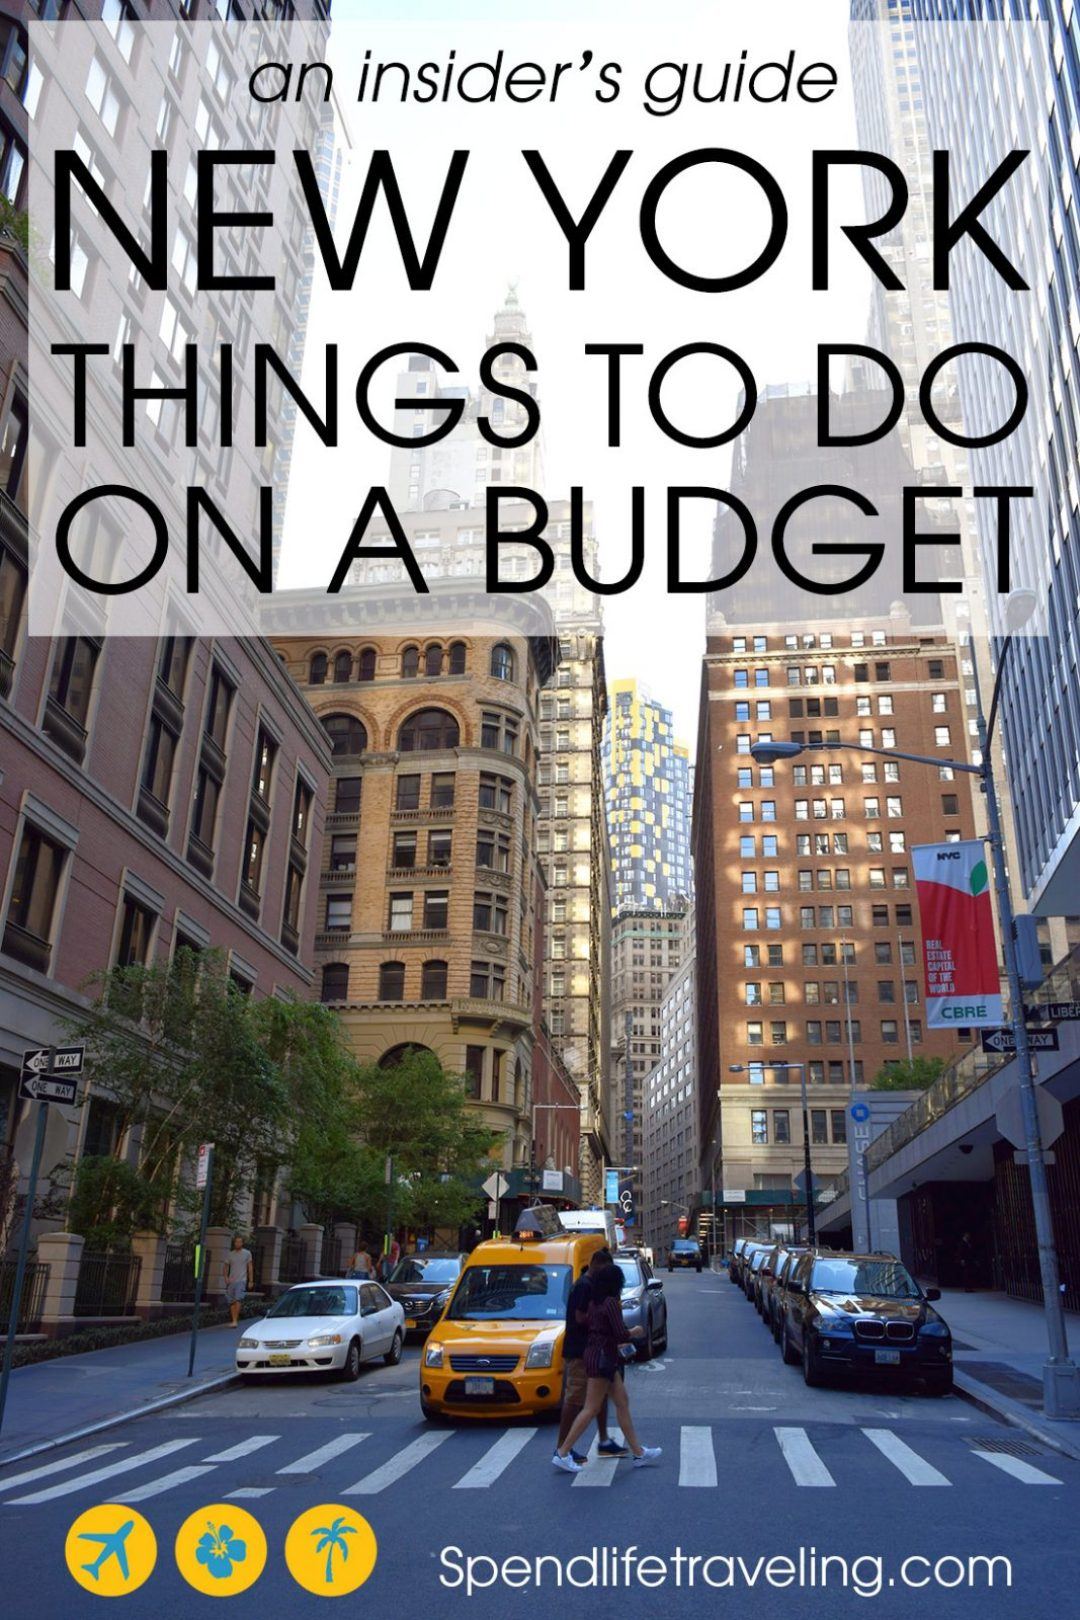 Things to do on a budget in New York City - An insider's guide to what to see & do in NYC. #NYC #NewYork #traveltips #travelguide #cityguide